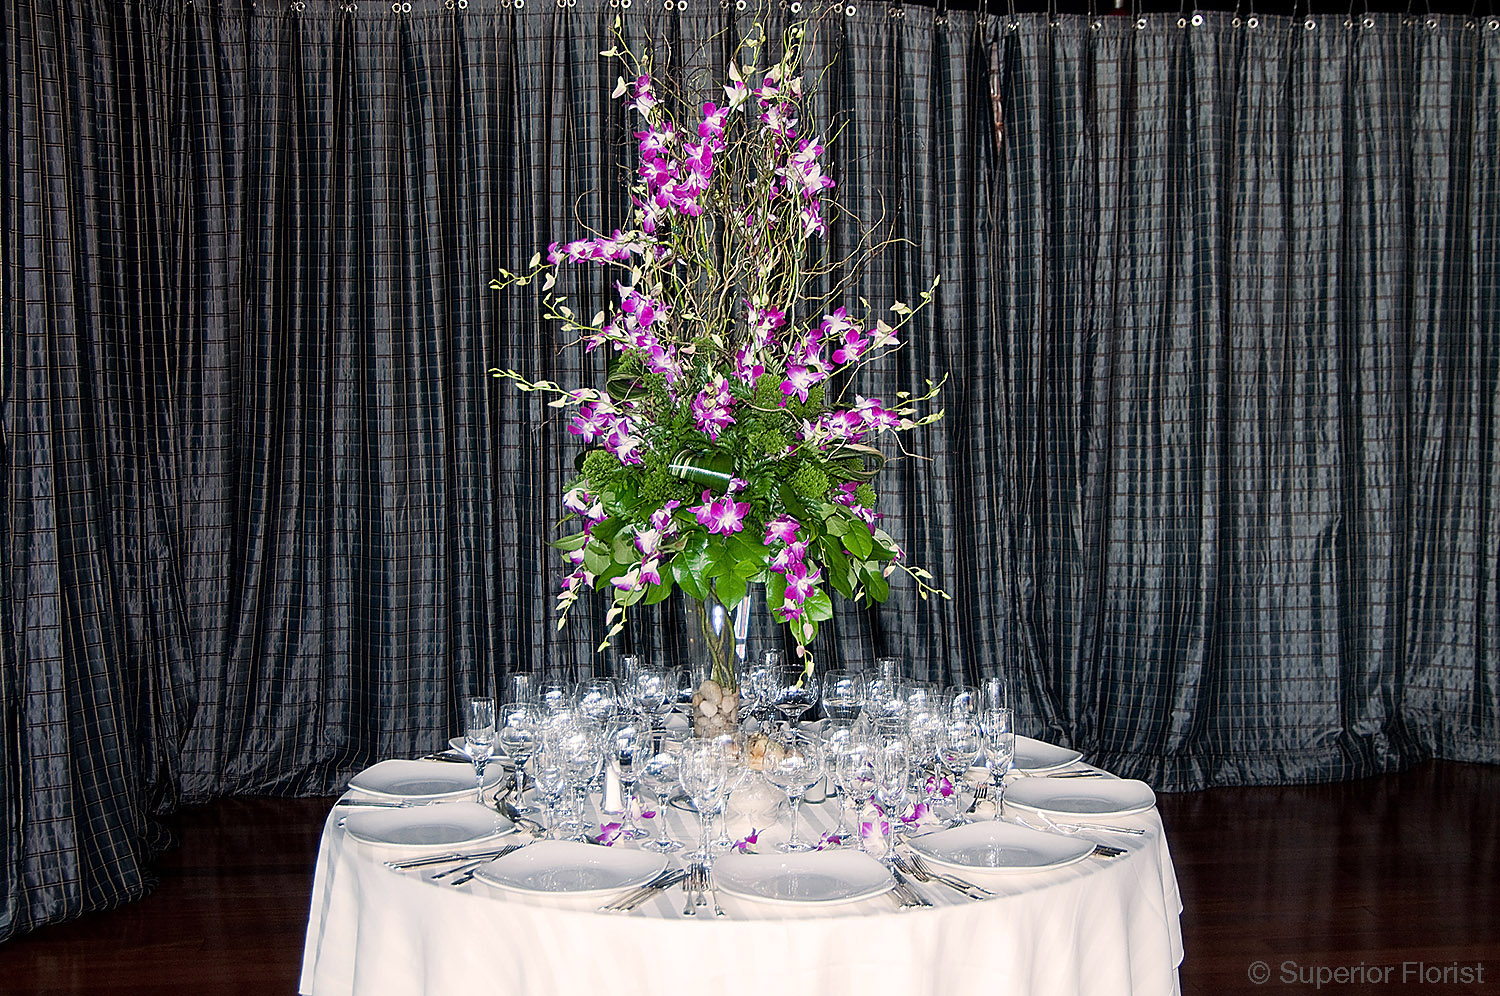 Superior Florist – Centerpieces:  Tall arrangement of curly willows, variegated Dendrobium orchids and assorted foliage in a trumpet vase.  River rocks in vase bottom.